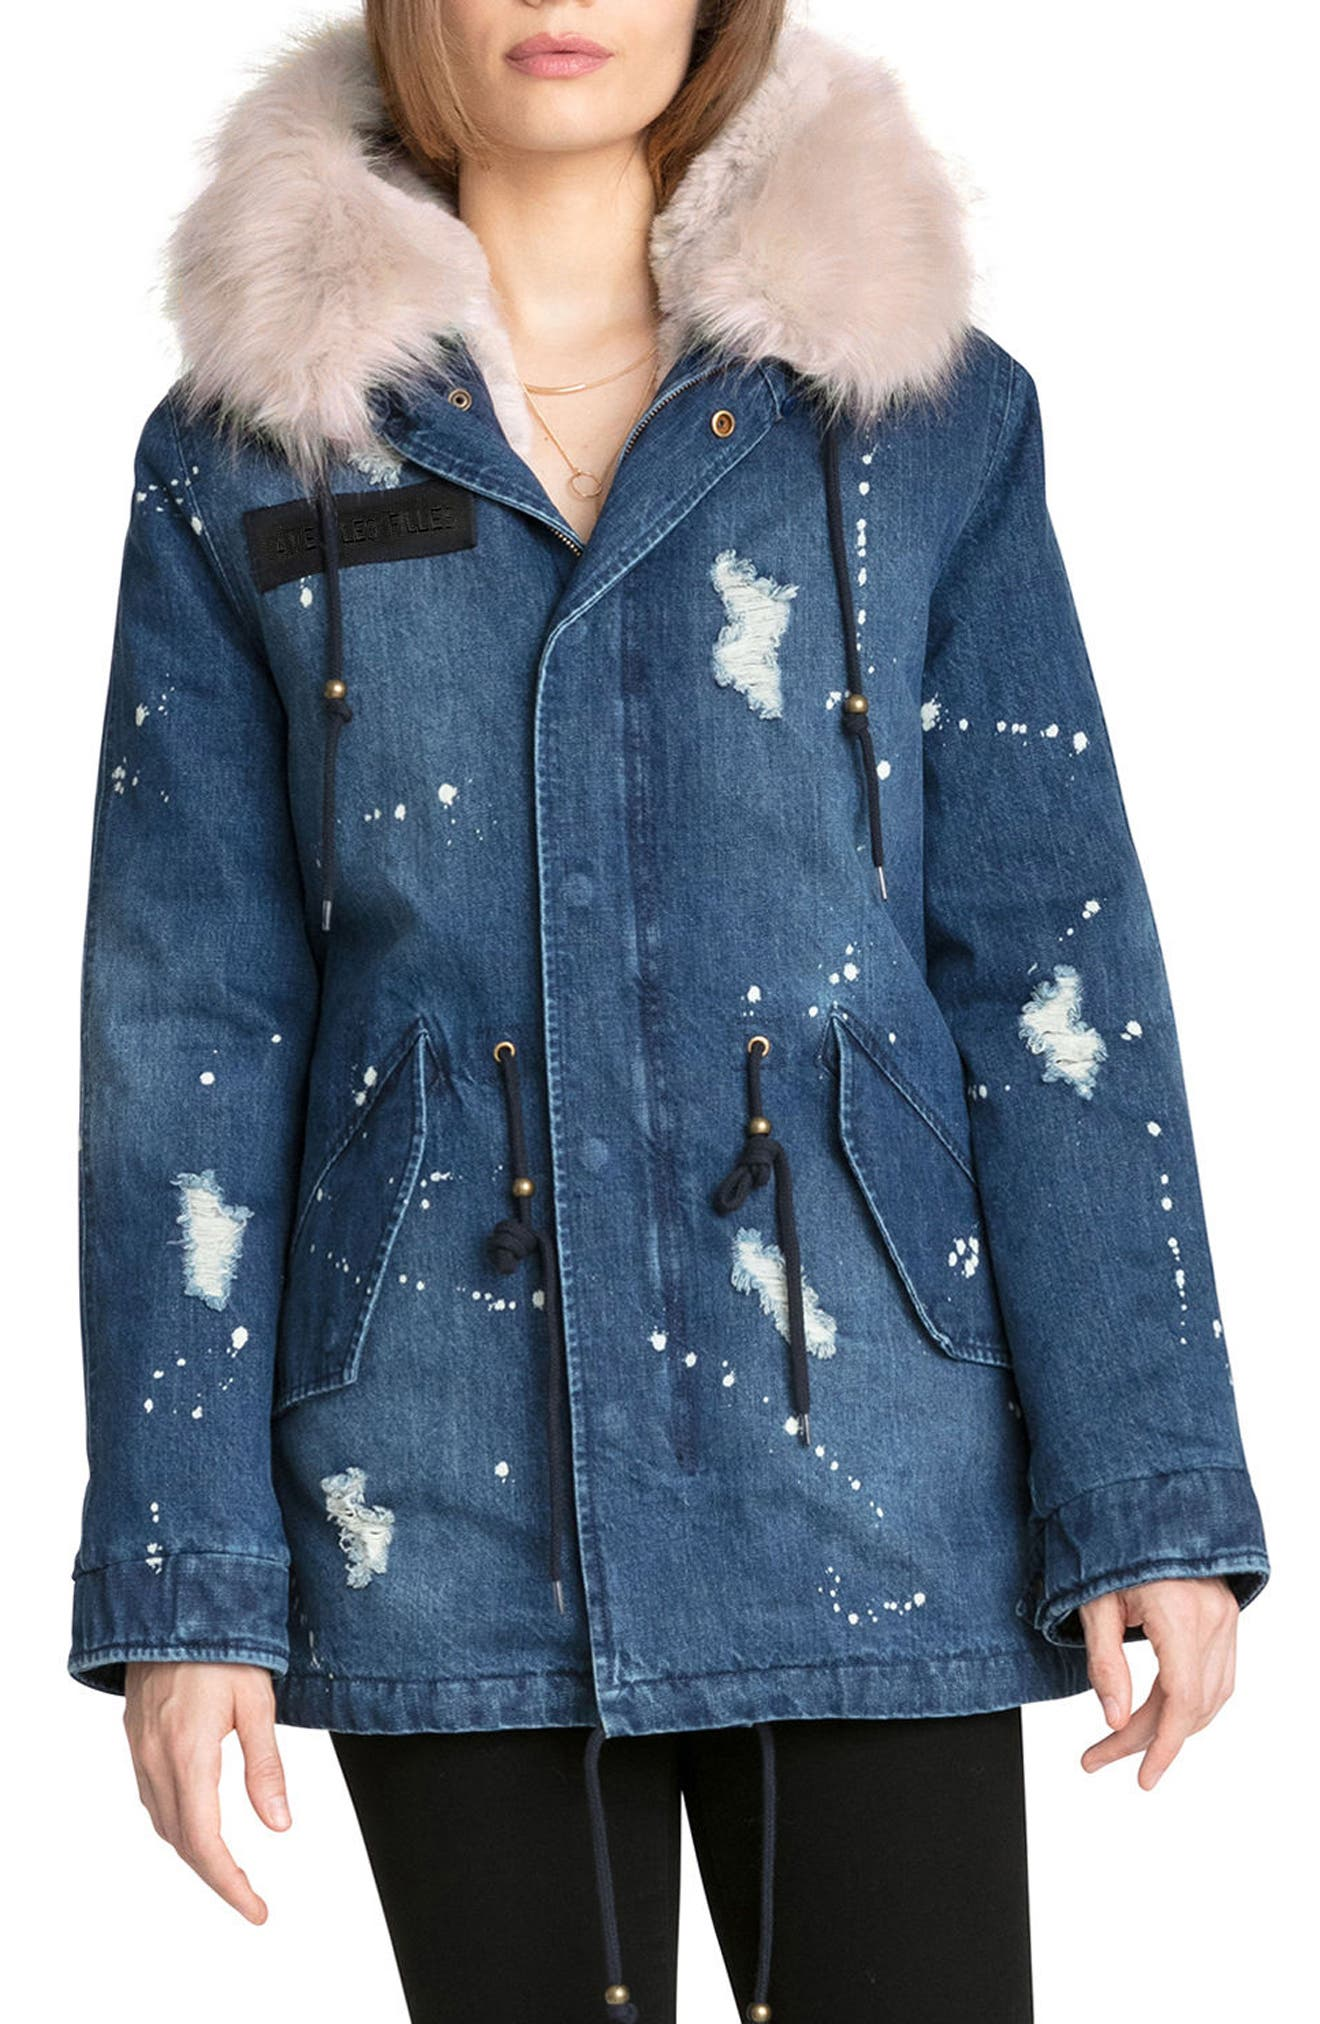 Alternate Image 1 Selected - Avec Les Filles 3-in-1 Distressed Denim Parka with Faux Shearling Trim